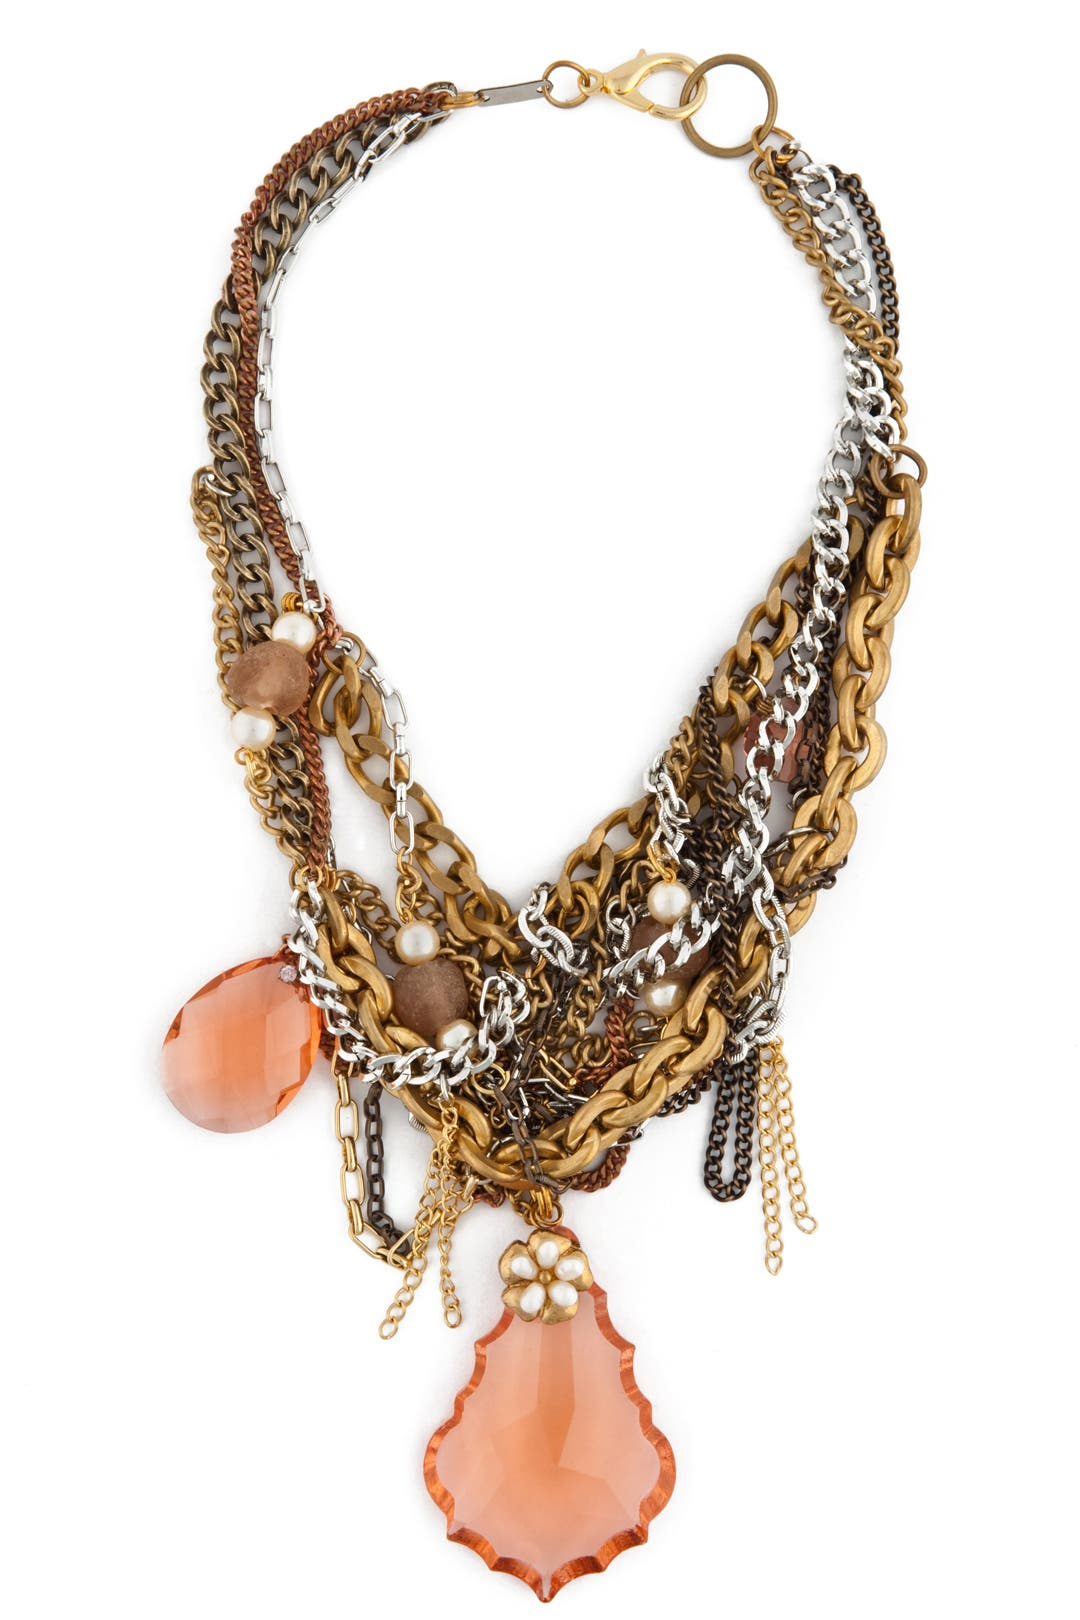 Pink Sunken Treasure Necklace by Subversive